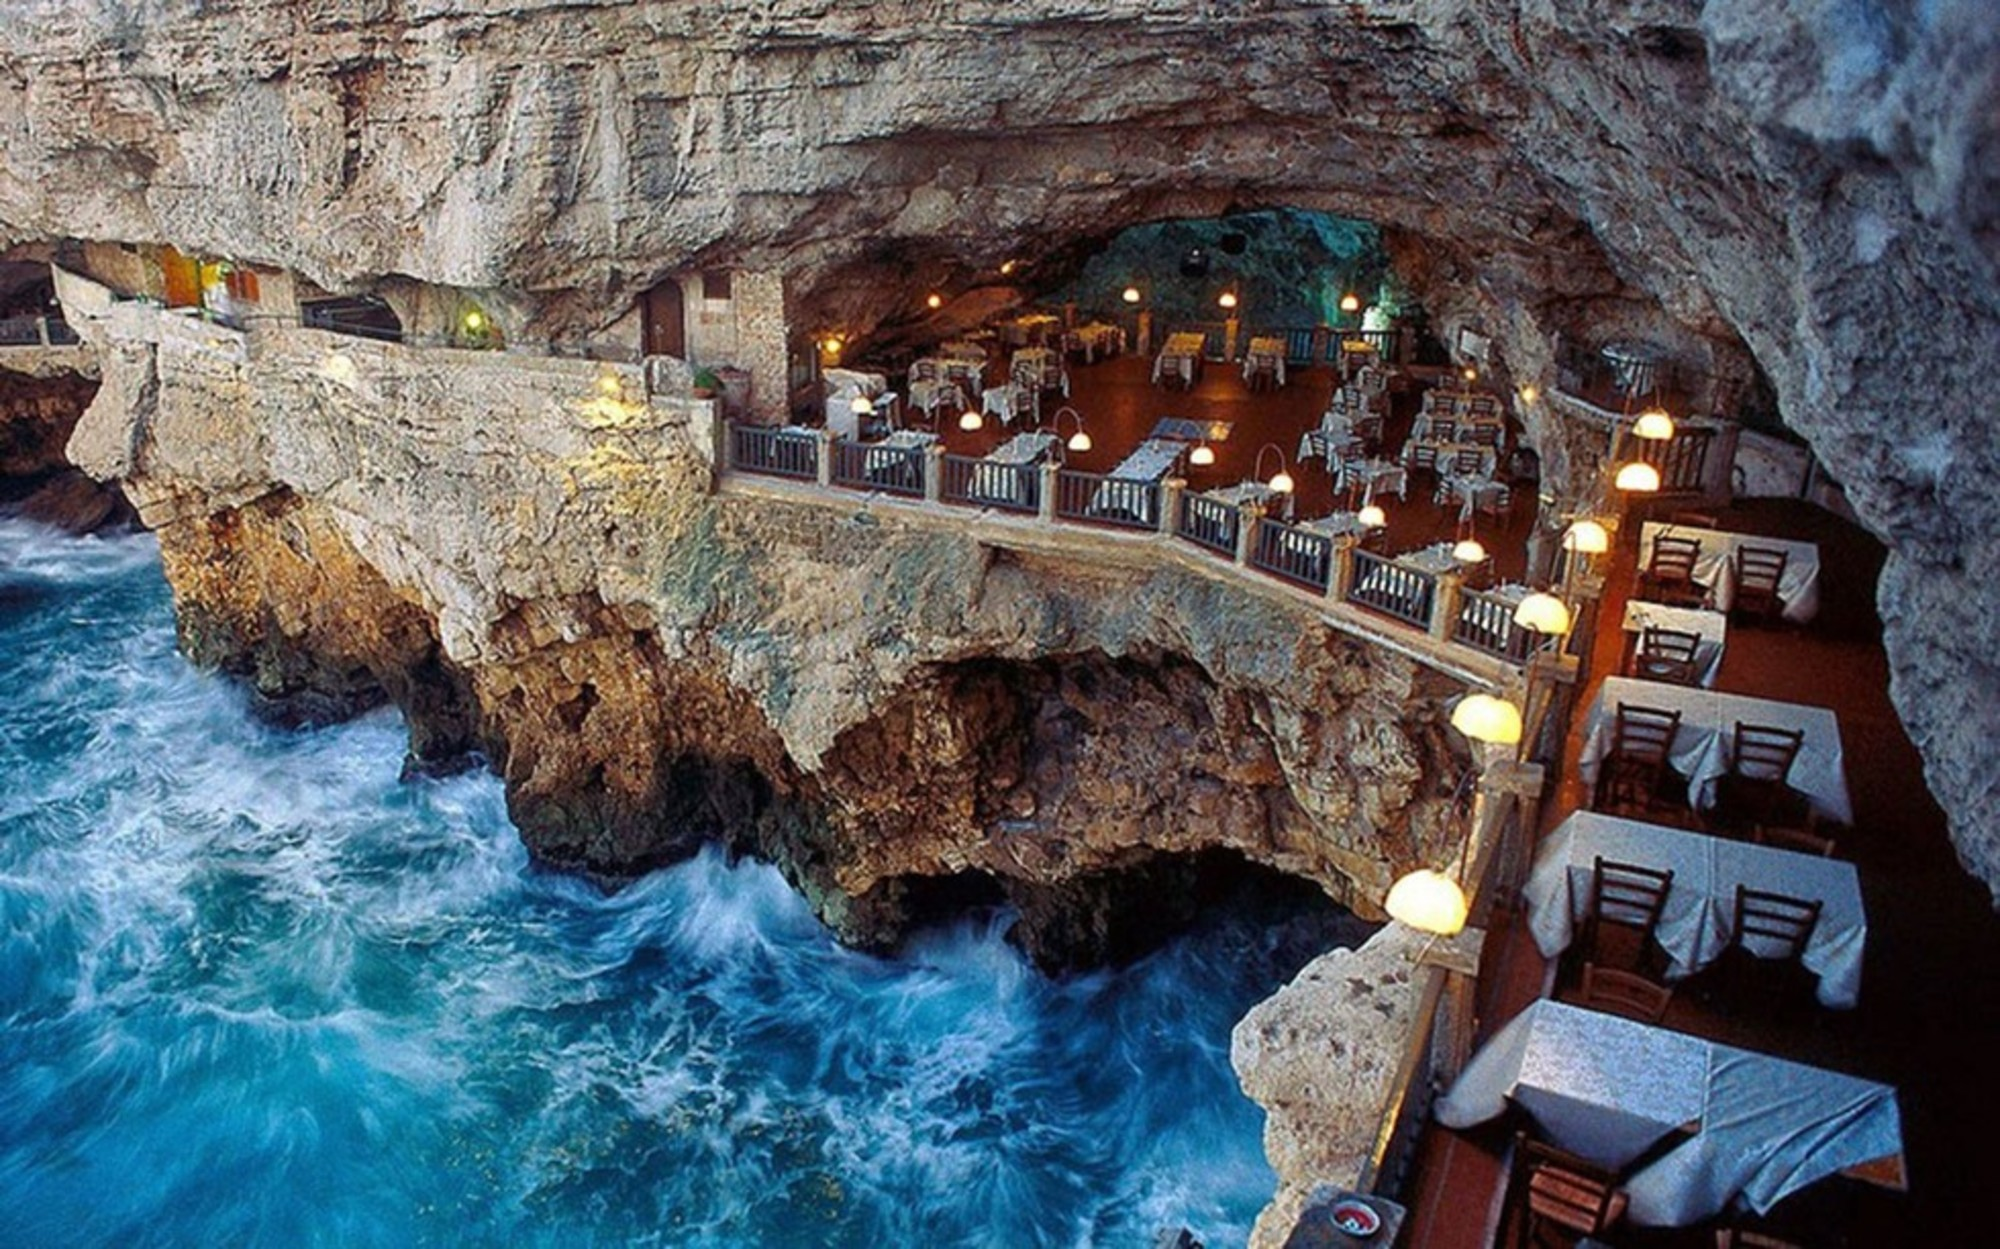 Luxury restaurants: an unforgettable experience inside a cave paris Top Coffee Shops in Paris Luxury restaurants an unforgettable experience inside a cave paris Top Coffee Shops in Paris Luxury restaurants an unforgettable experience inside a cave